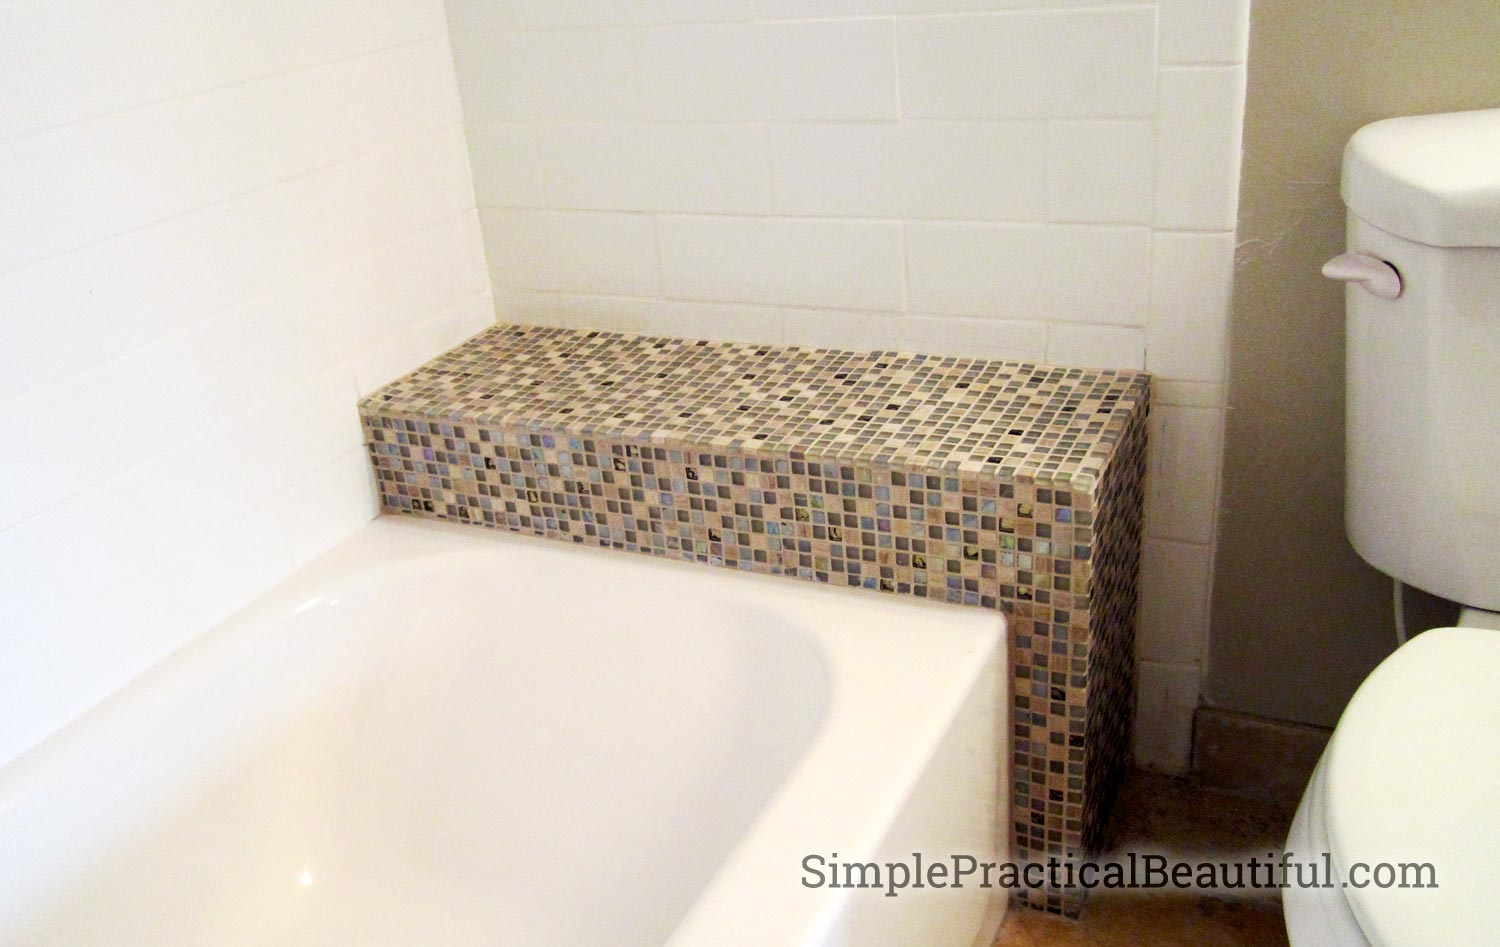 1-inch tiles makes a statement